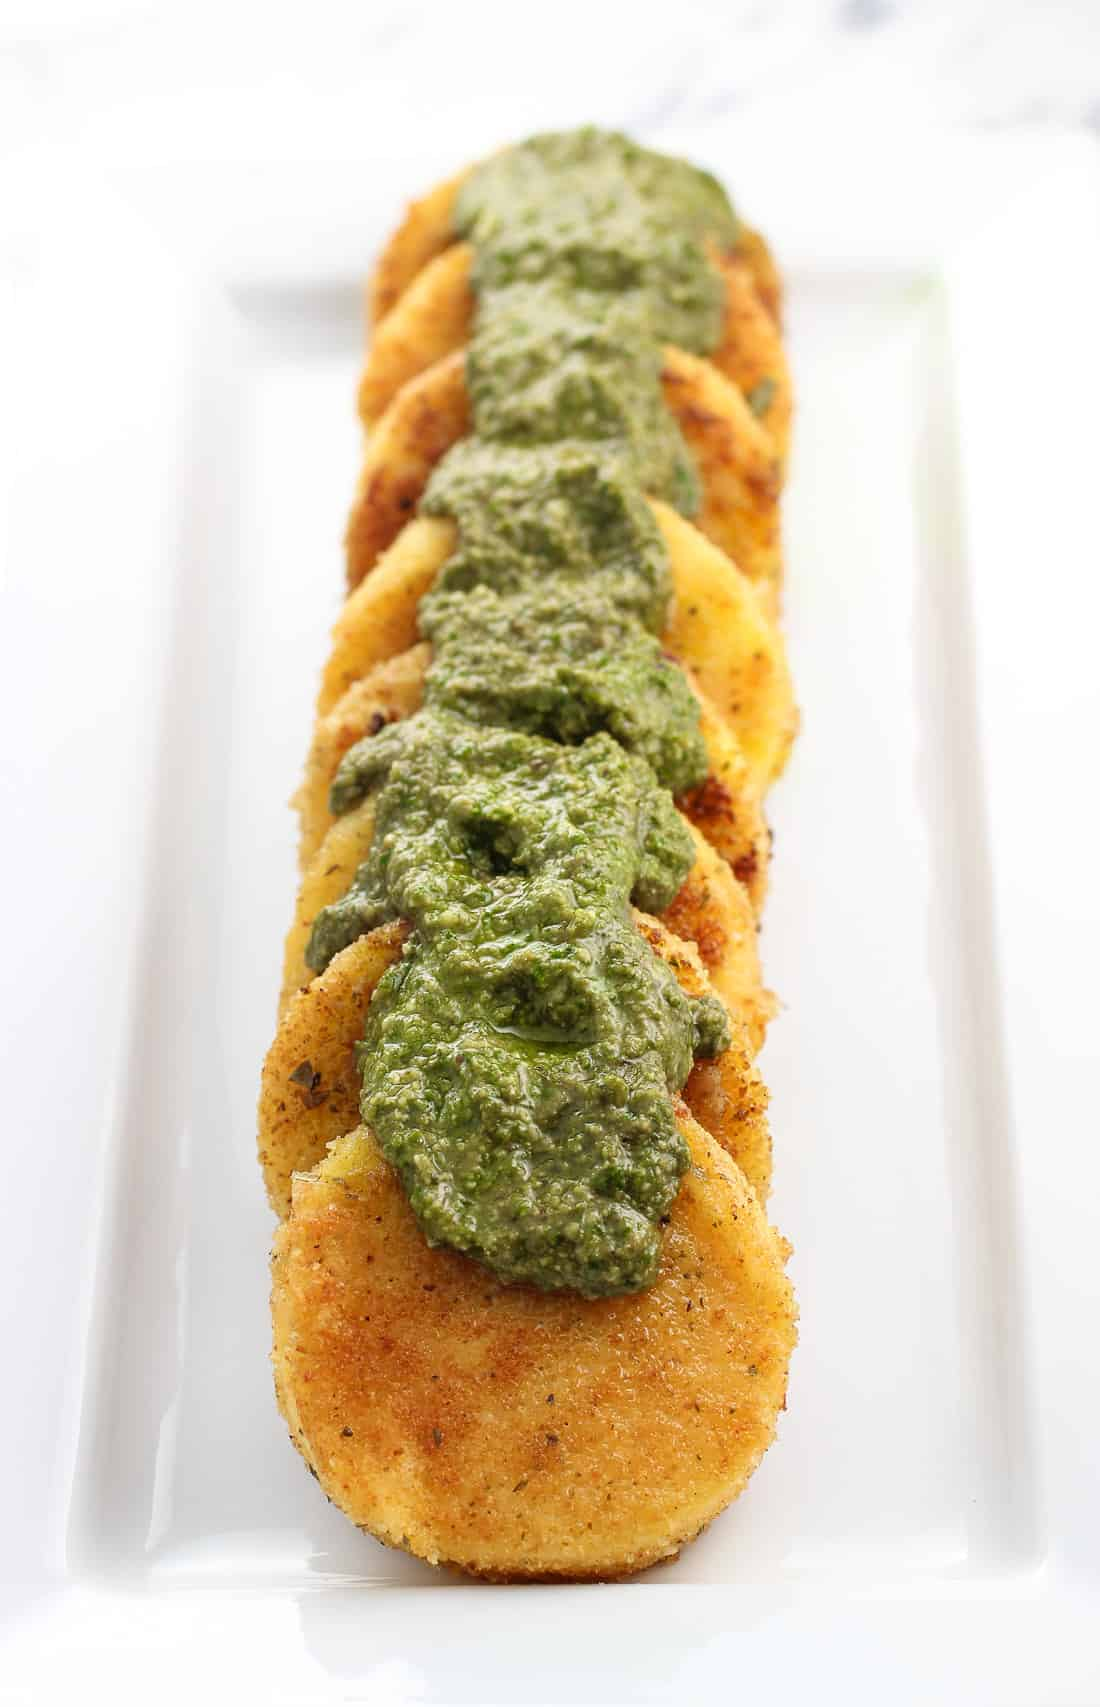 Pan fried polenta on a tray with basil pesto spooned over top